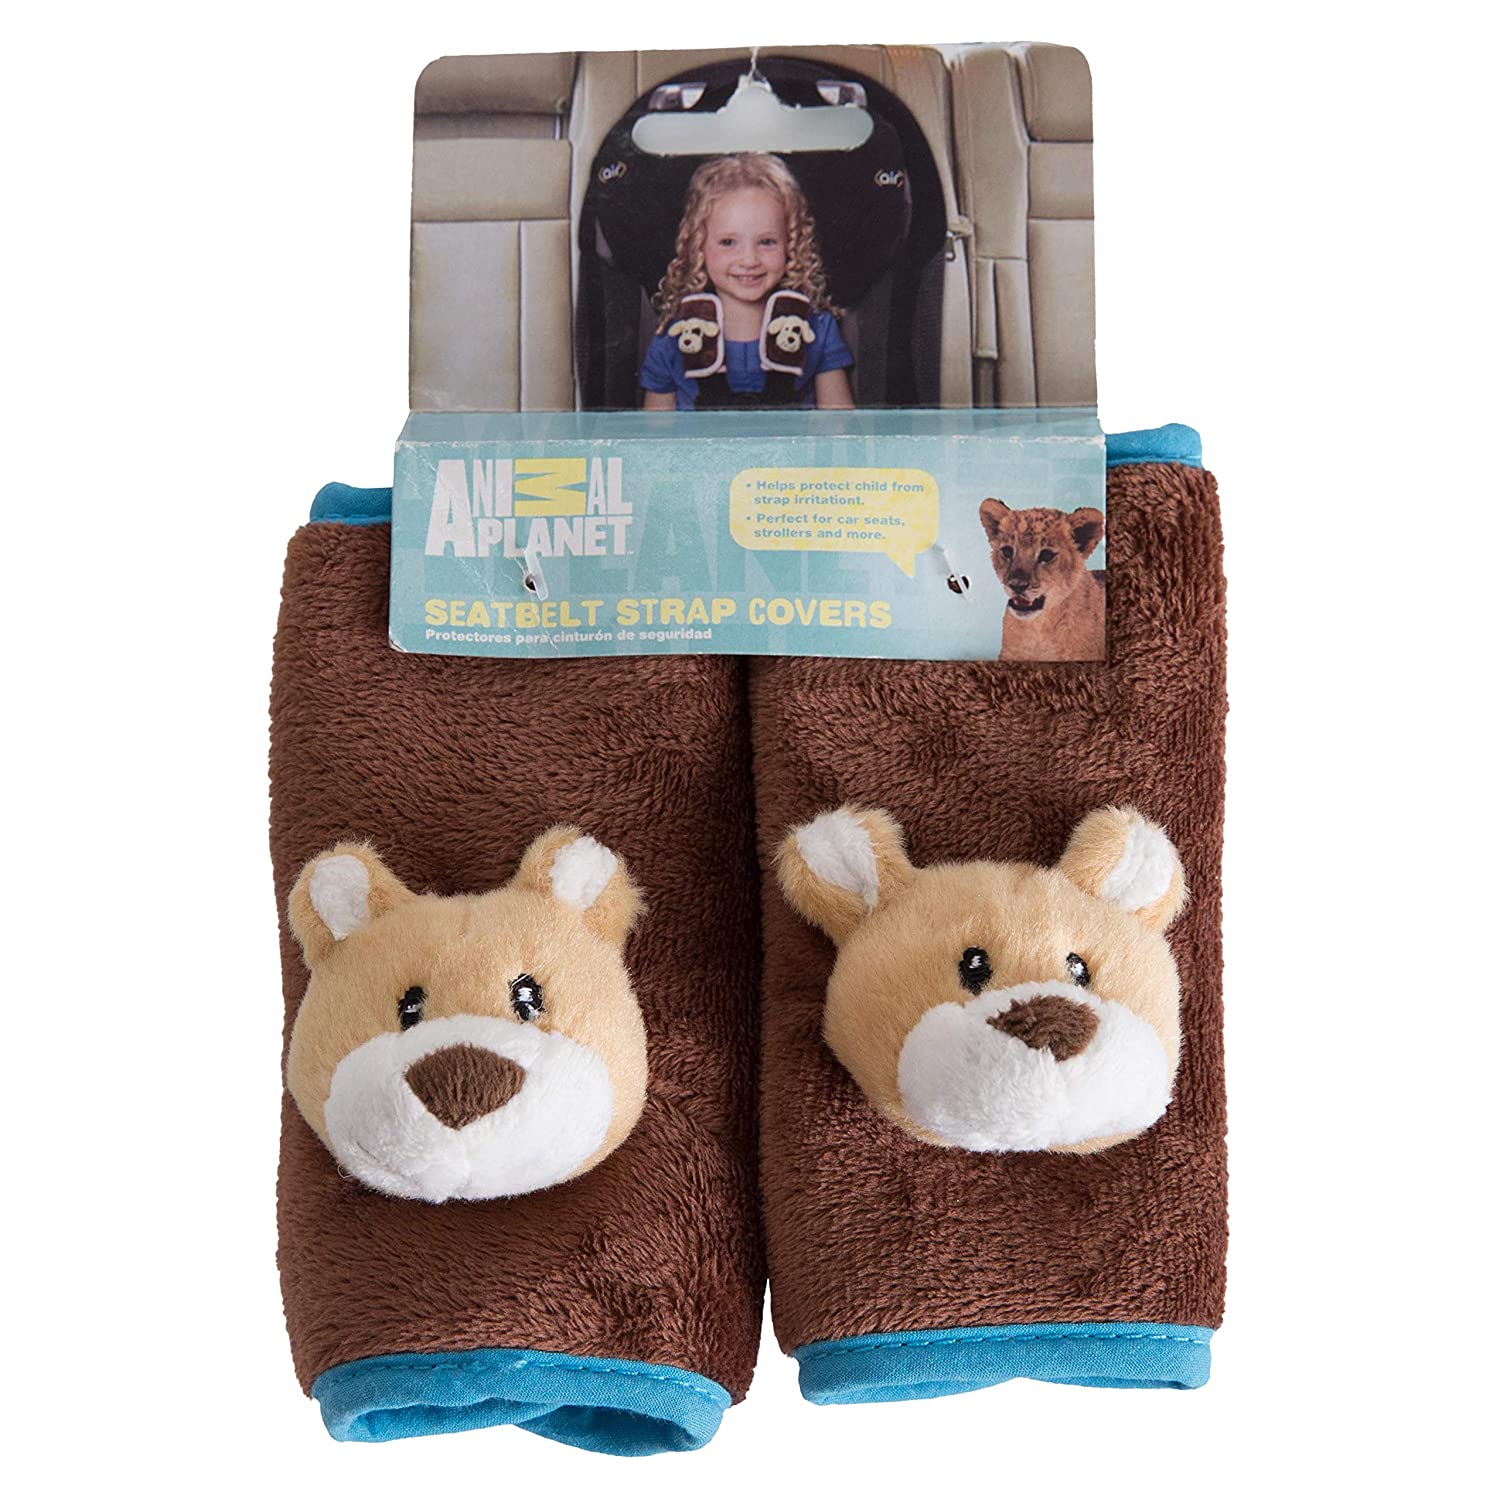 Ranking TOP13 Animal Planet Strap Covers Brown free 2 Pack Bear